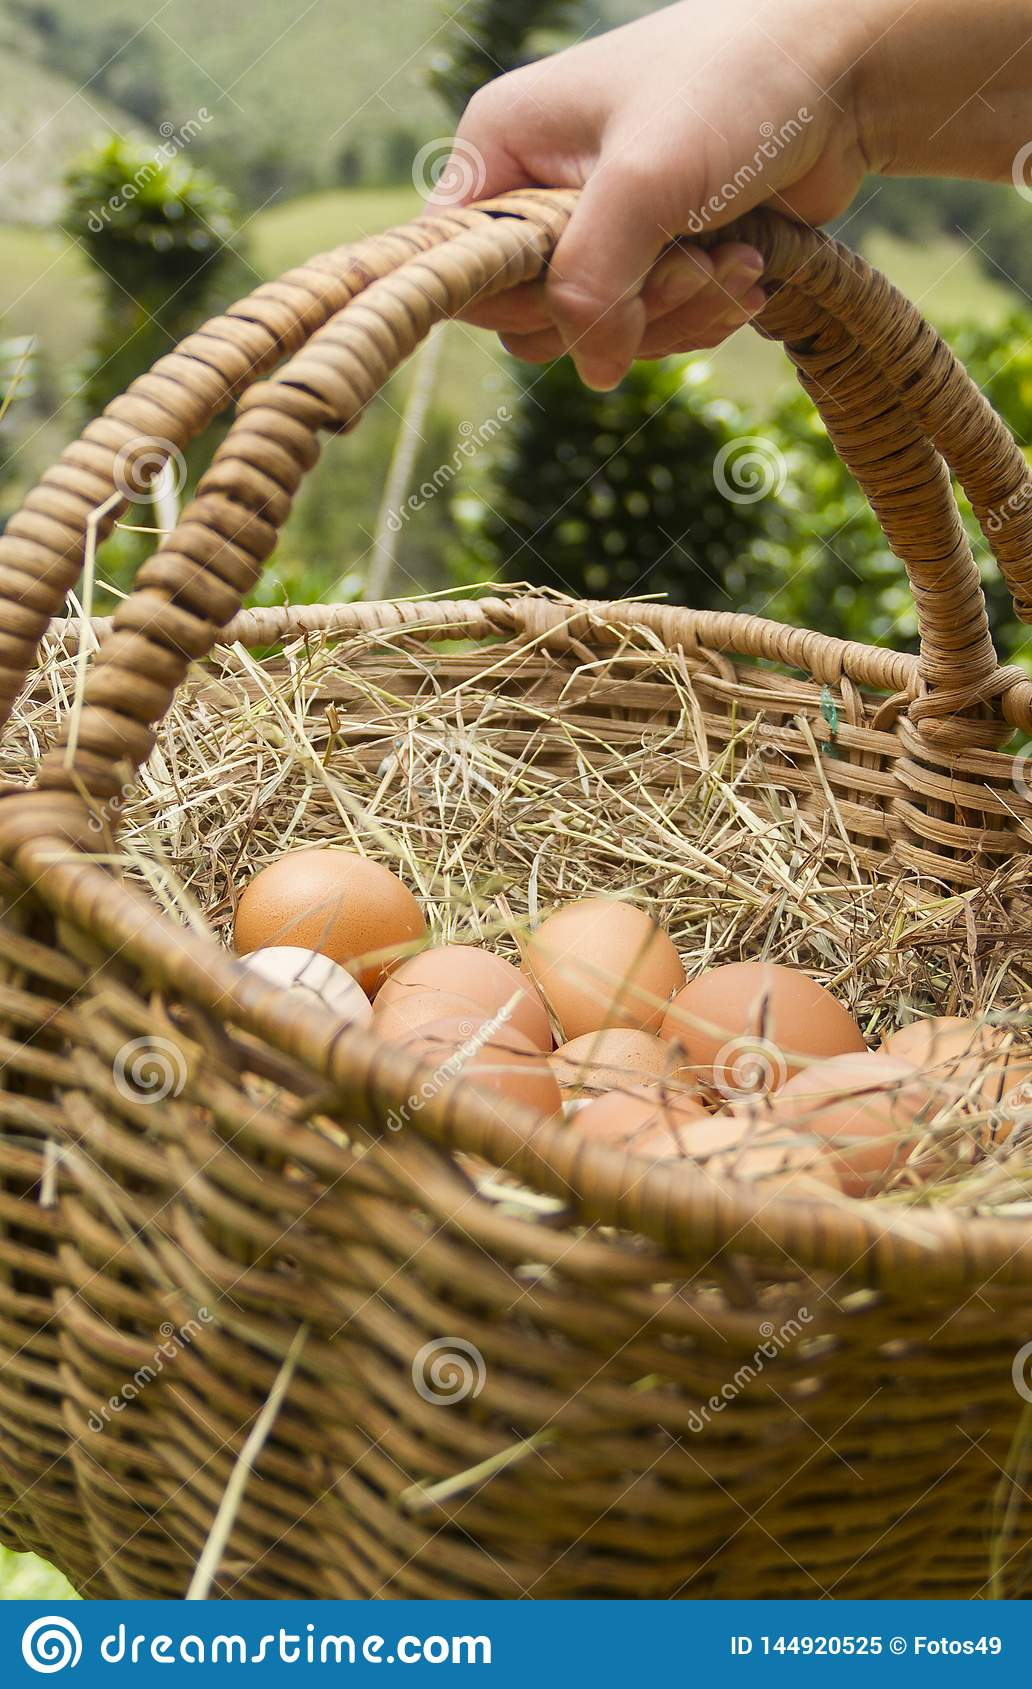 Hand with bascket of fresh eggs green backsground